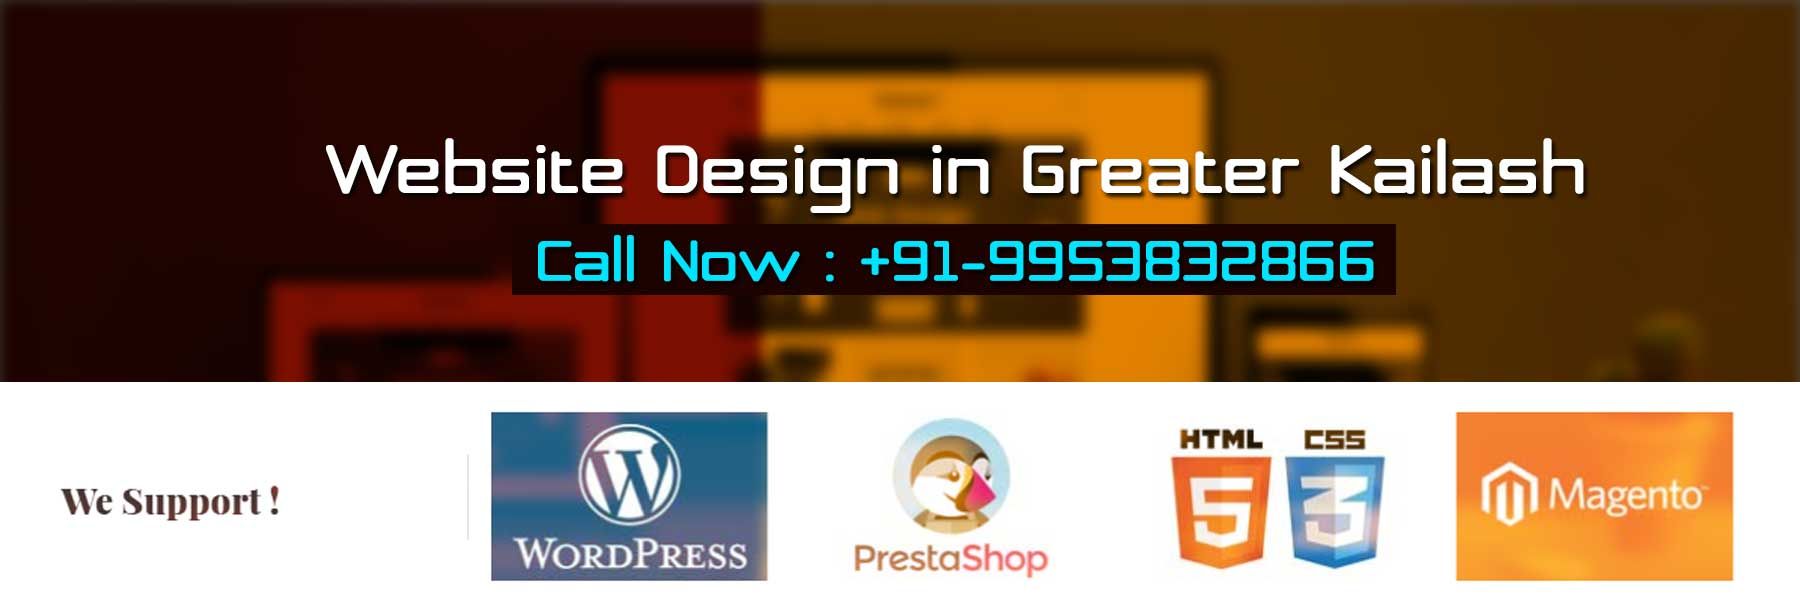 Website Design in Greater Kailash